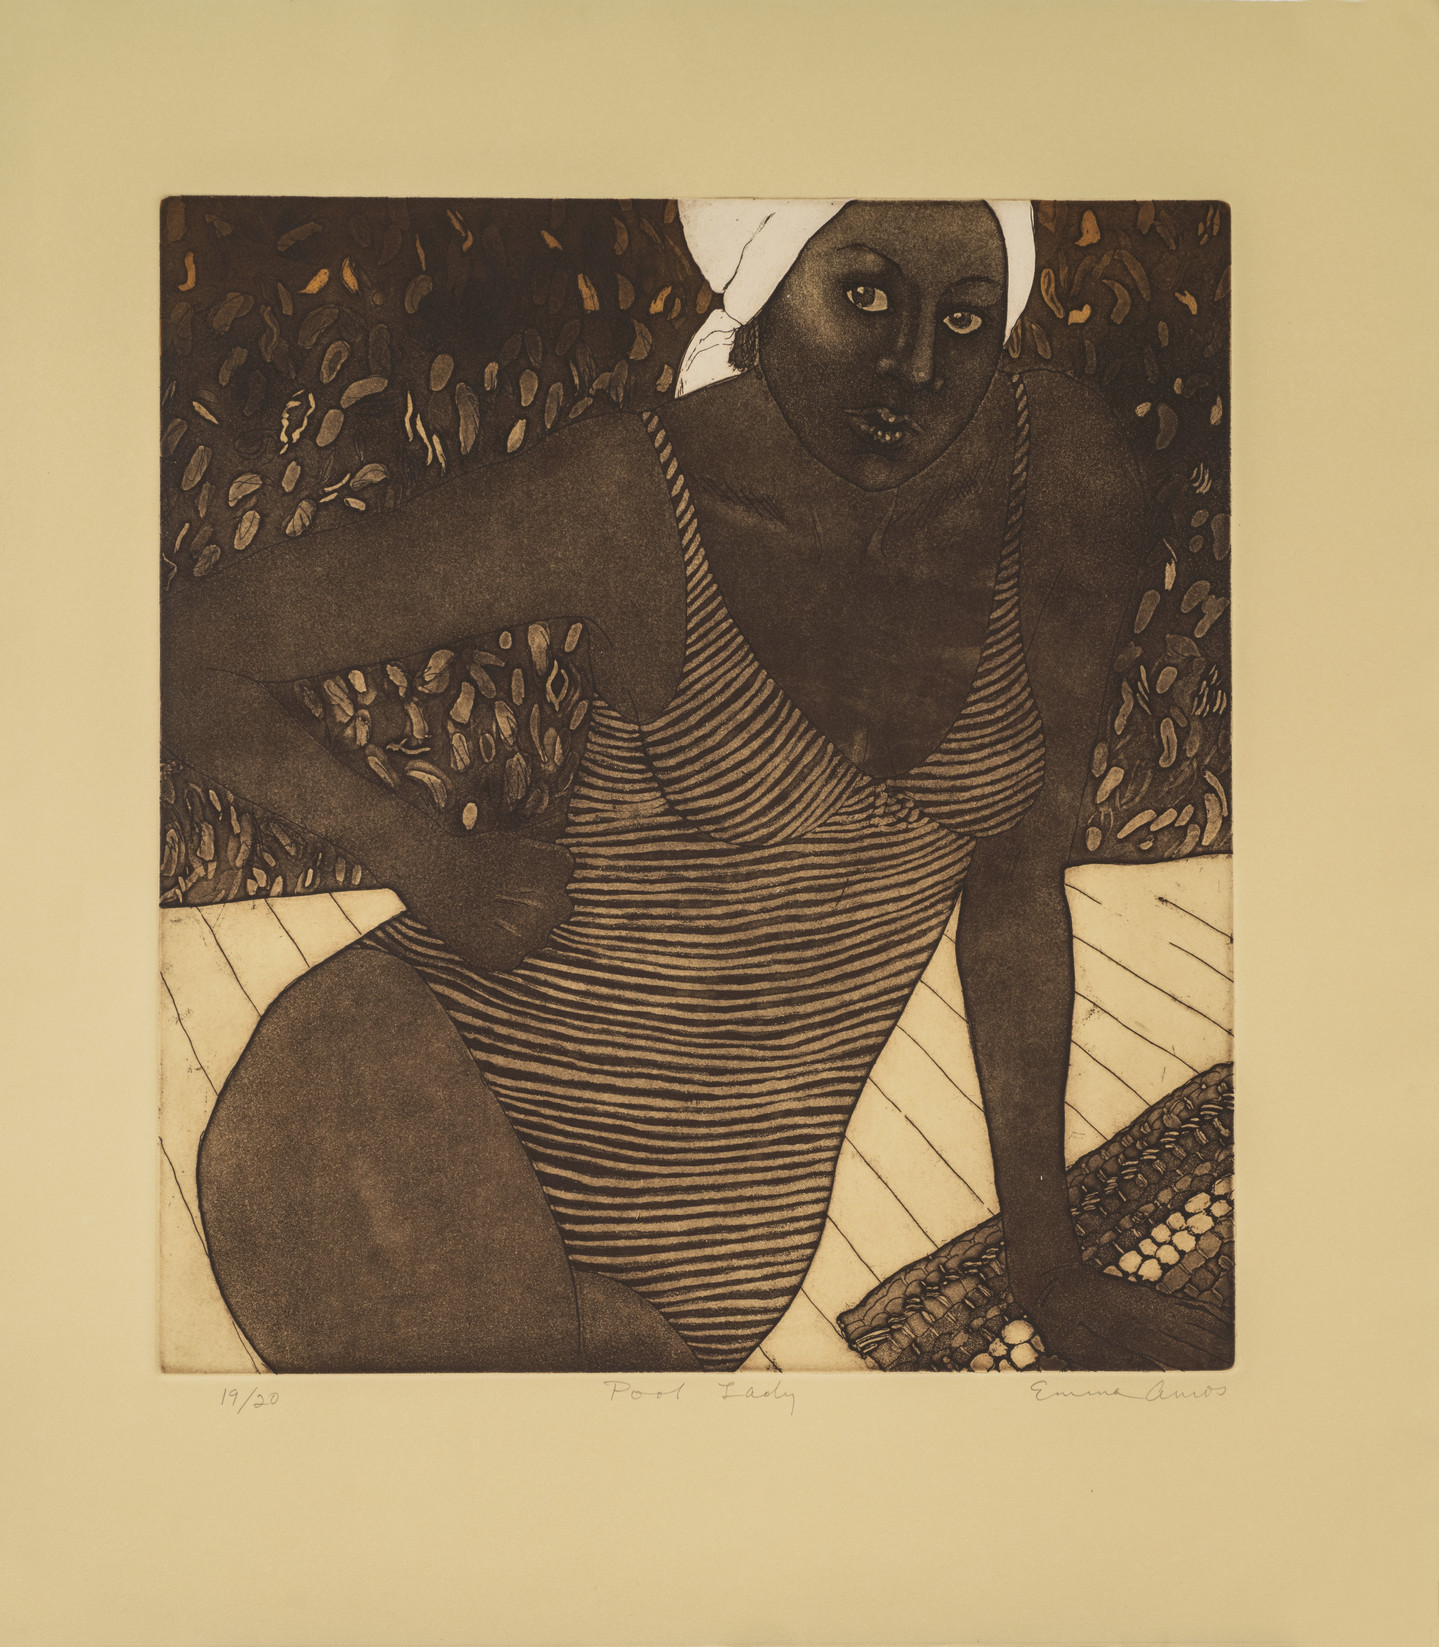 A dark-skinned adult woman seen from the hips up rendered in brownish-black ink on light tan paper, framed in a square. She wears a striped, one-piece bathing suit and a white cap. She leans on her left arm on a towel on white planks, and her right hand is on her hip with her elbow out.